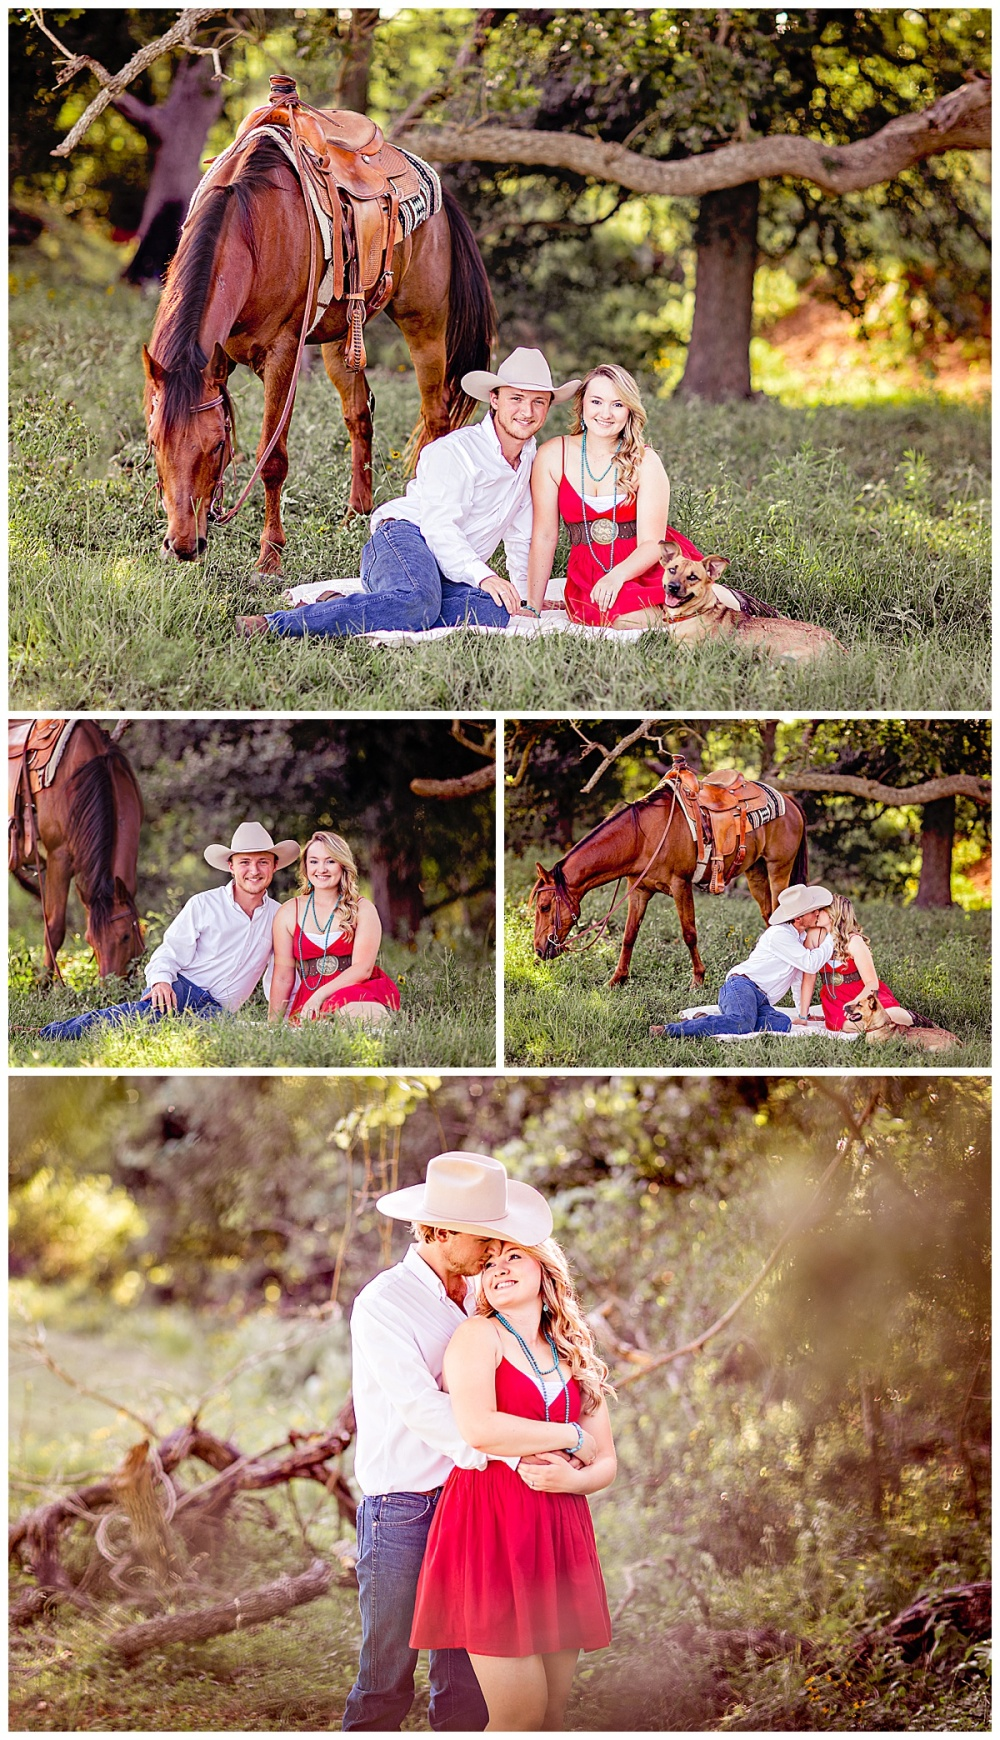 Rustic-Engagement-Session-Horse-Texas-Sunset-Carly-Barton-Photography_0007.jpg